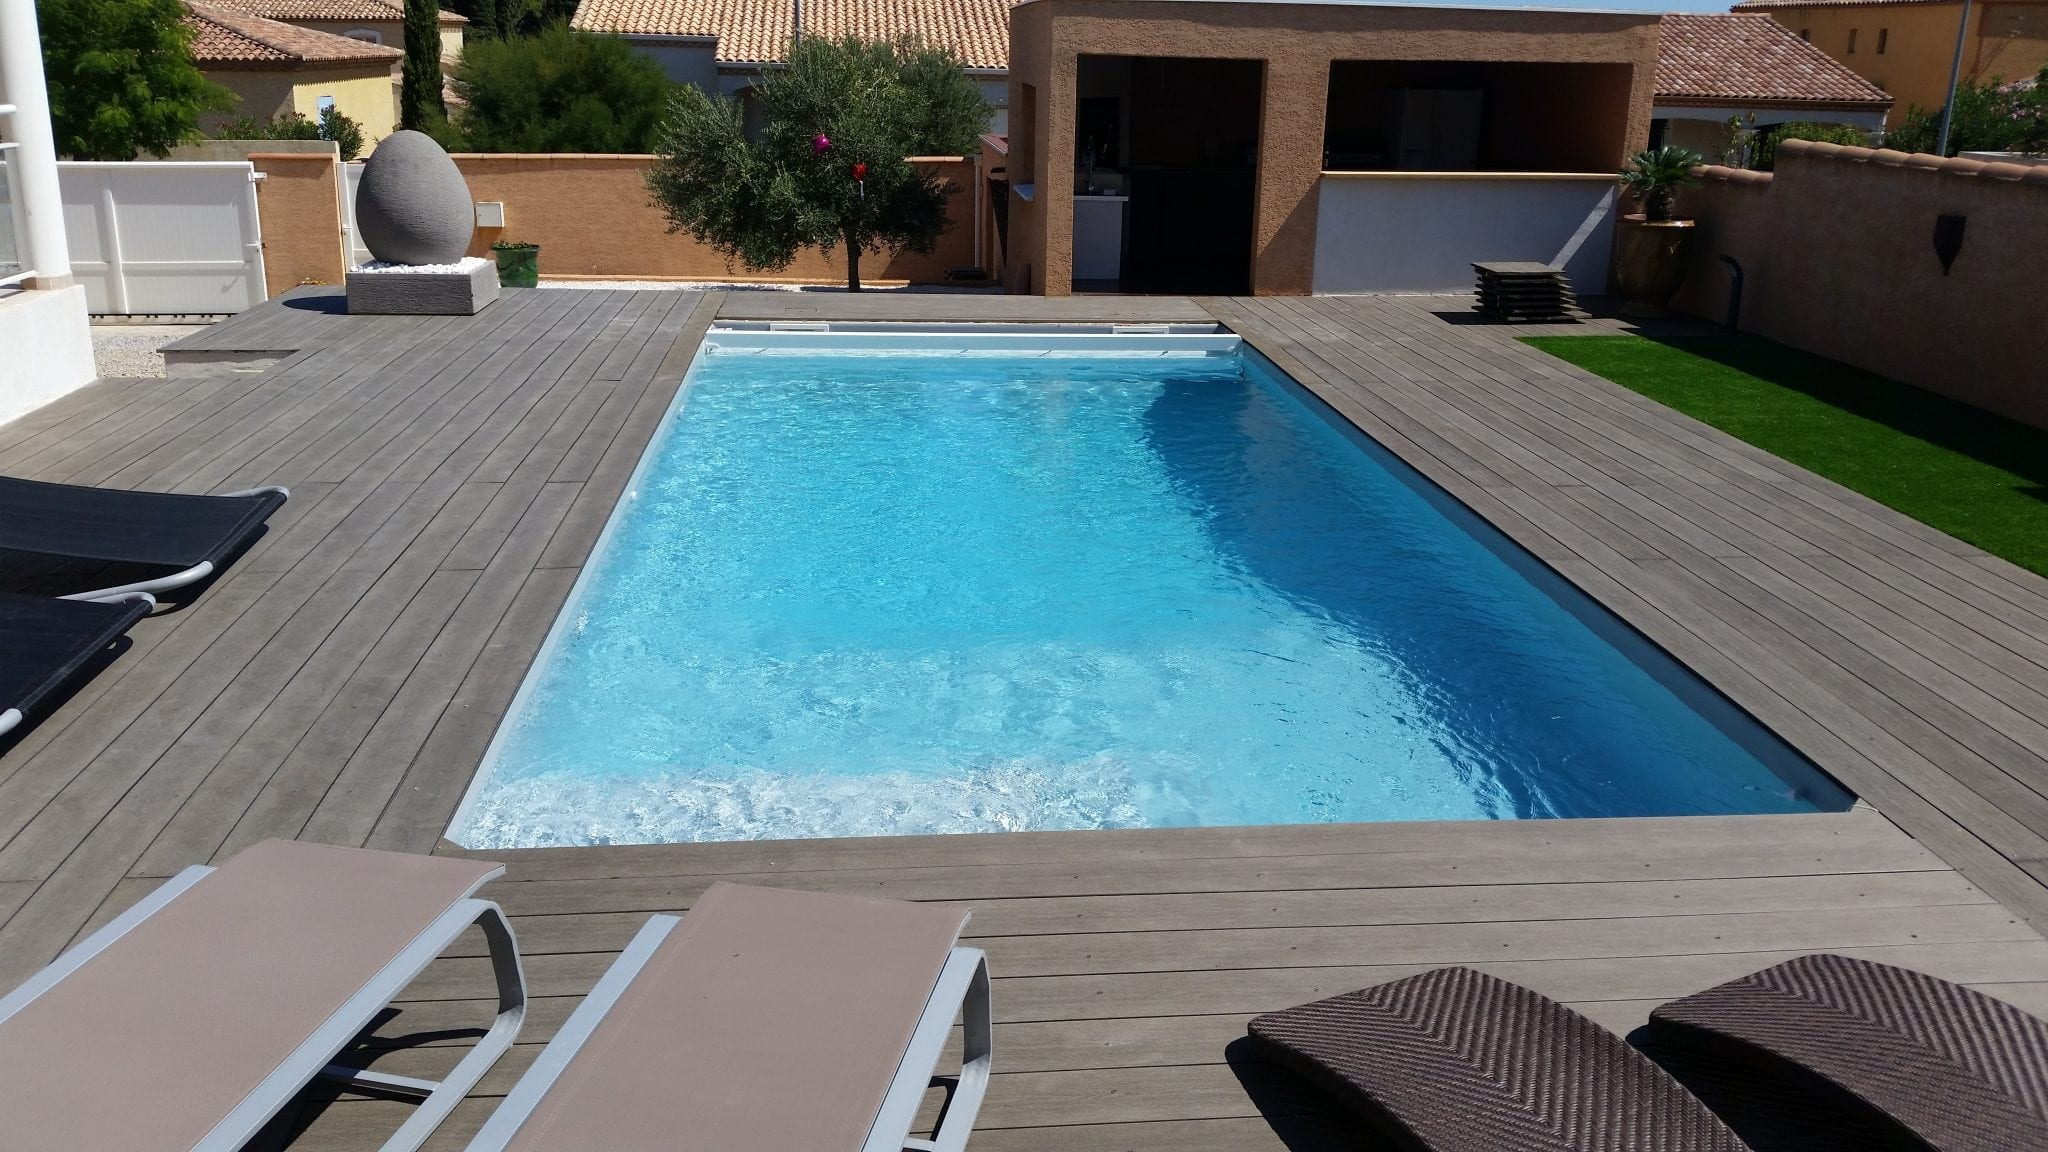 Renovation piscine narbonne beton 17 btv piscine for Piscine narbonne